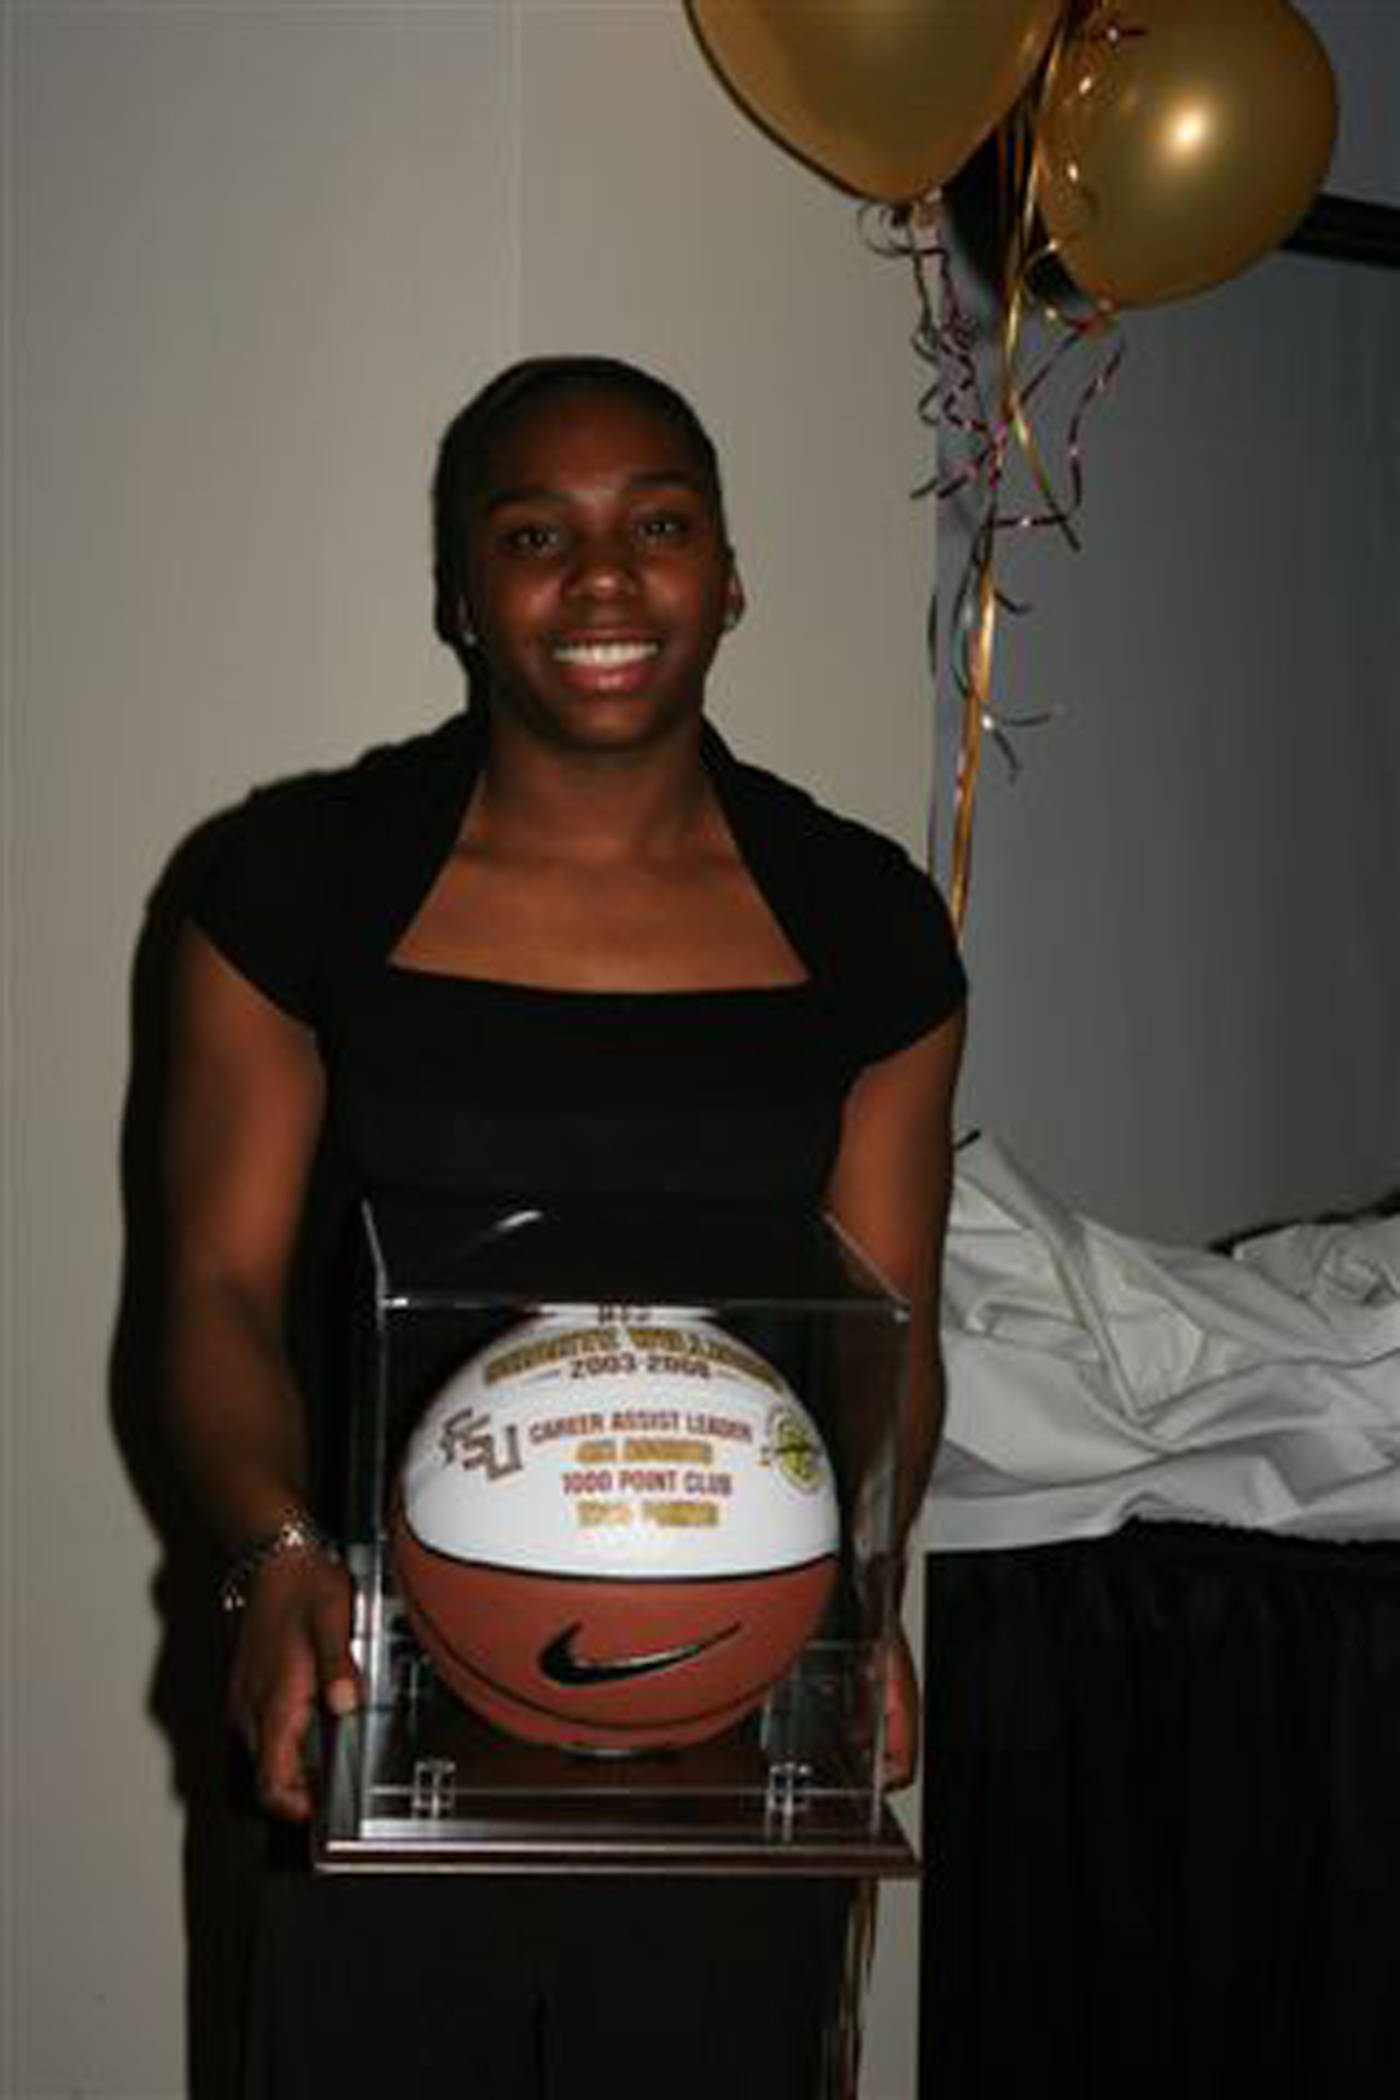 Shante Williams with the game ball for breaking the school's assist record and scoring 1,000 points.